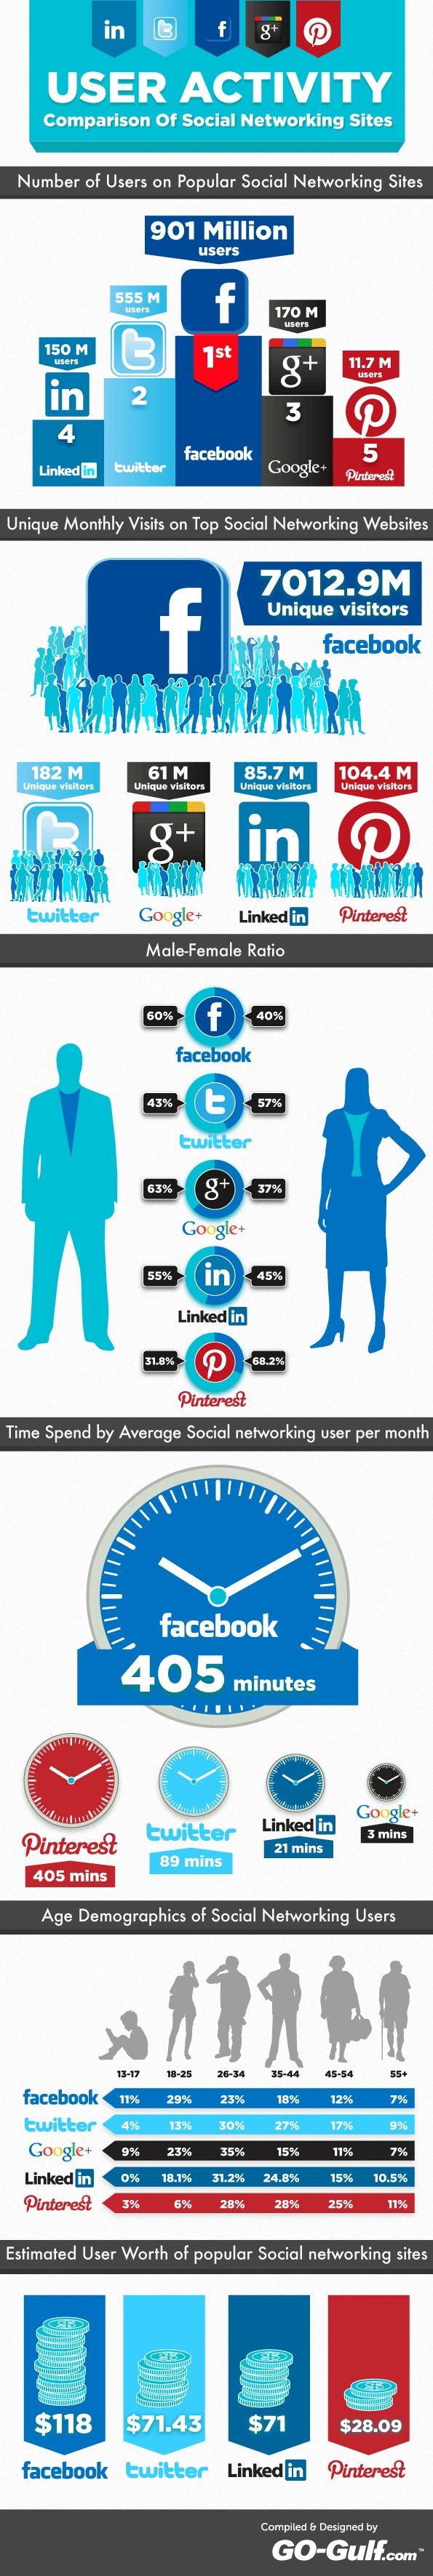 The users of social media - This infographic from Go-Gulf.com shares the latest facts and figures about the users of the top social media sites.